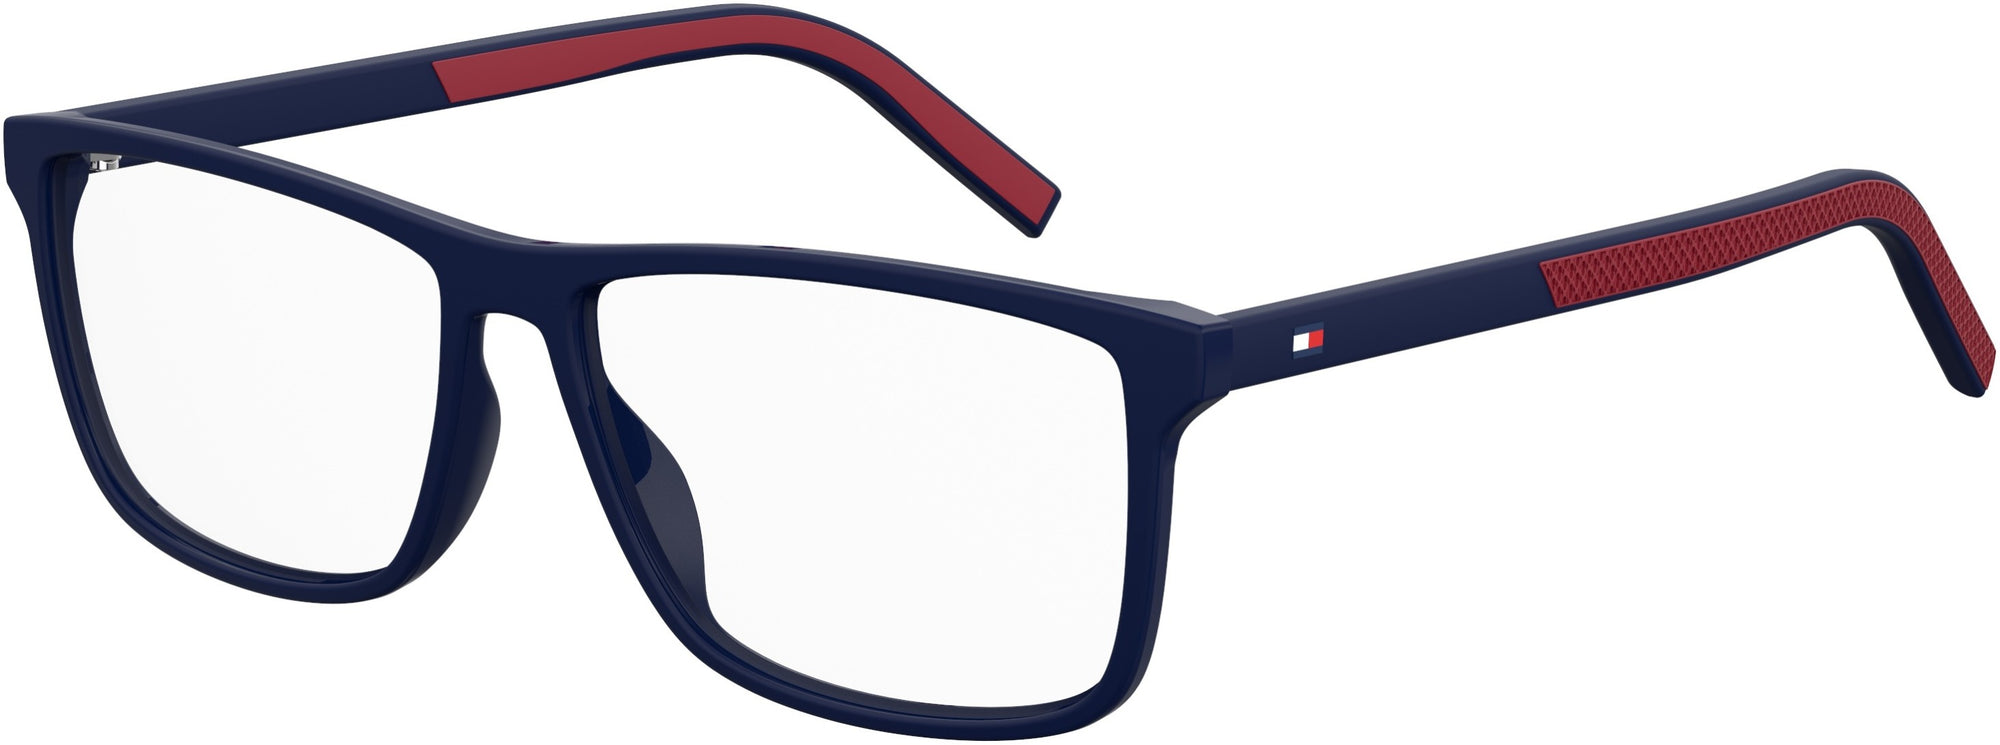 Tommy Hilfiger TH 1696 Rectangular Sunglasses 0WIR-0WIR  Matte Blue Red (00 Demo Lens)